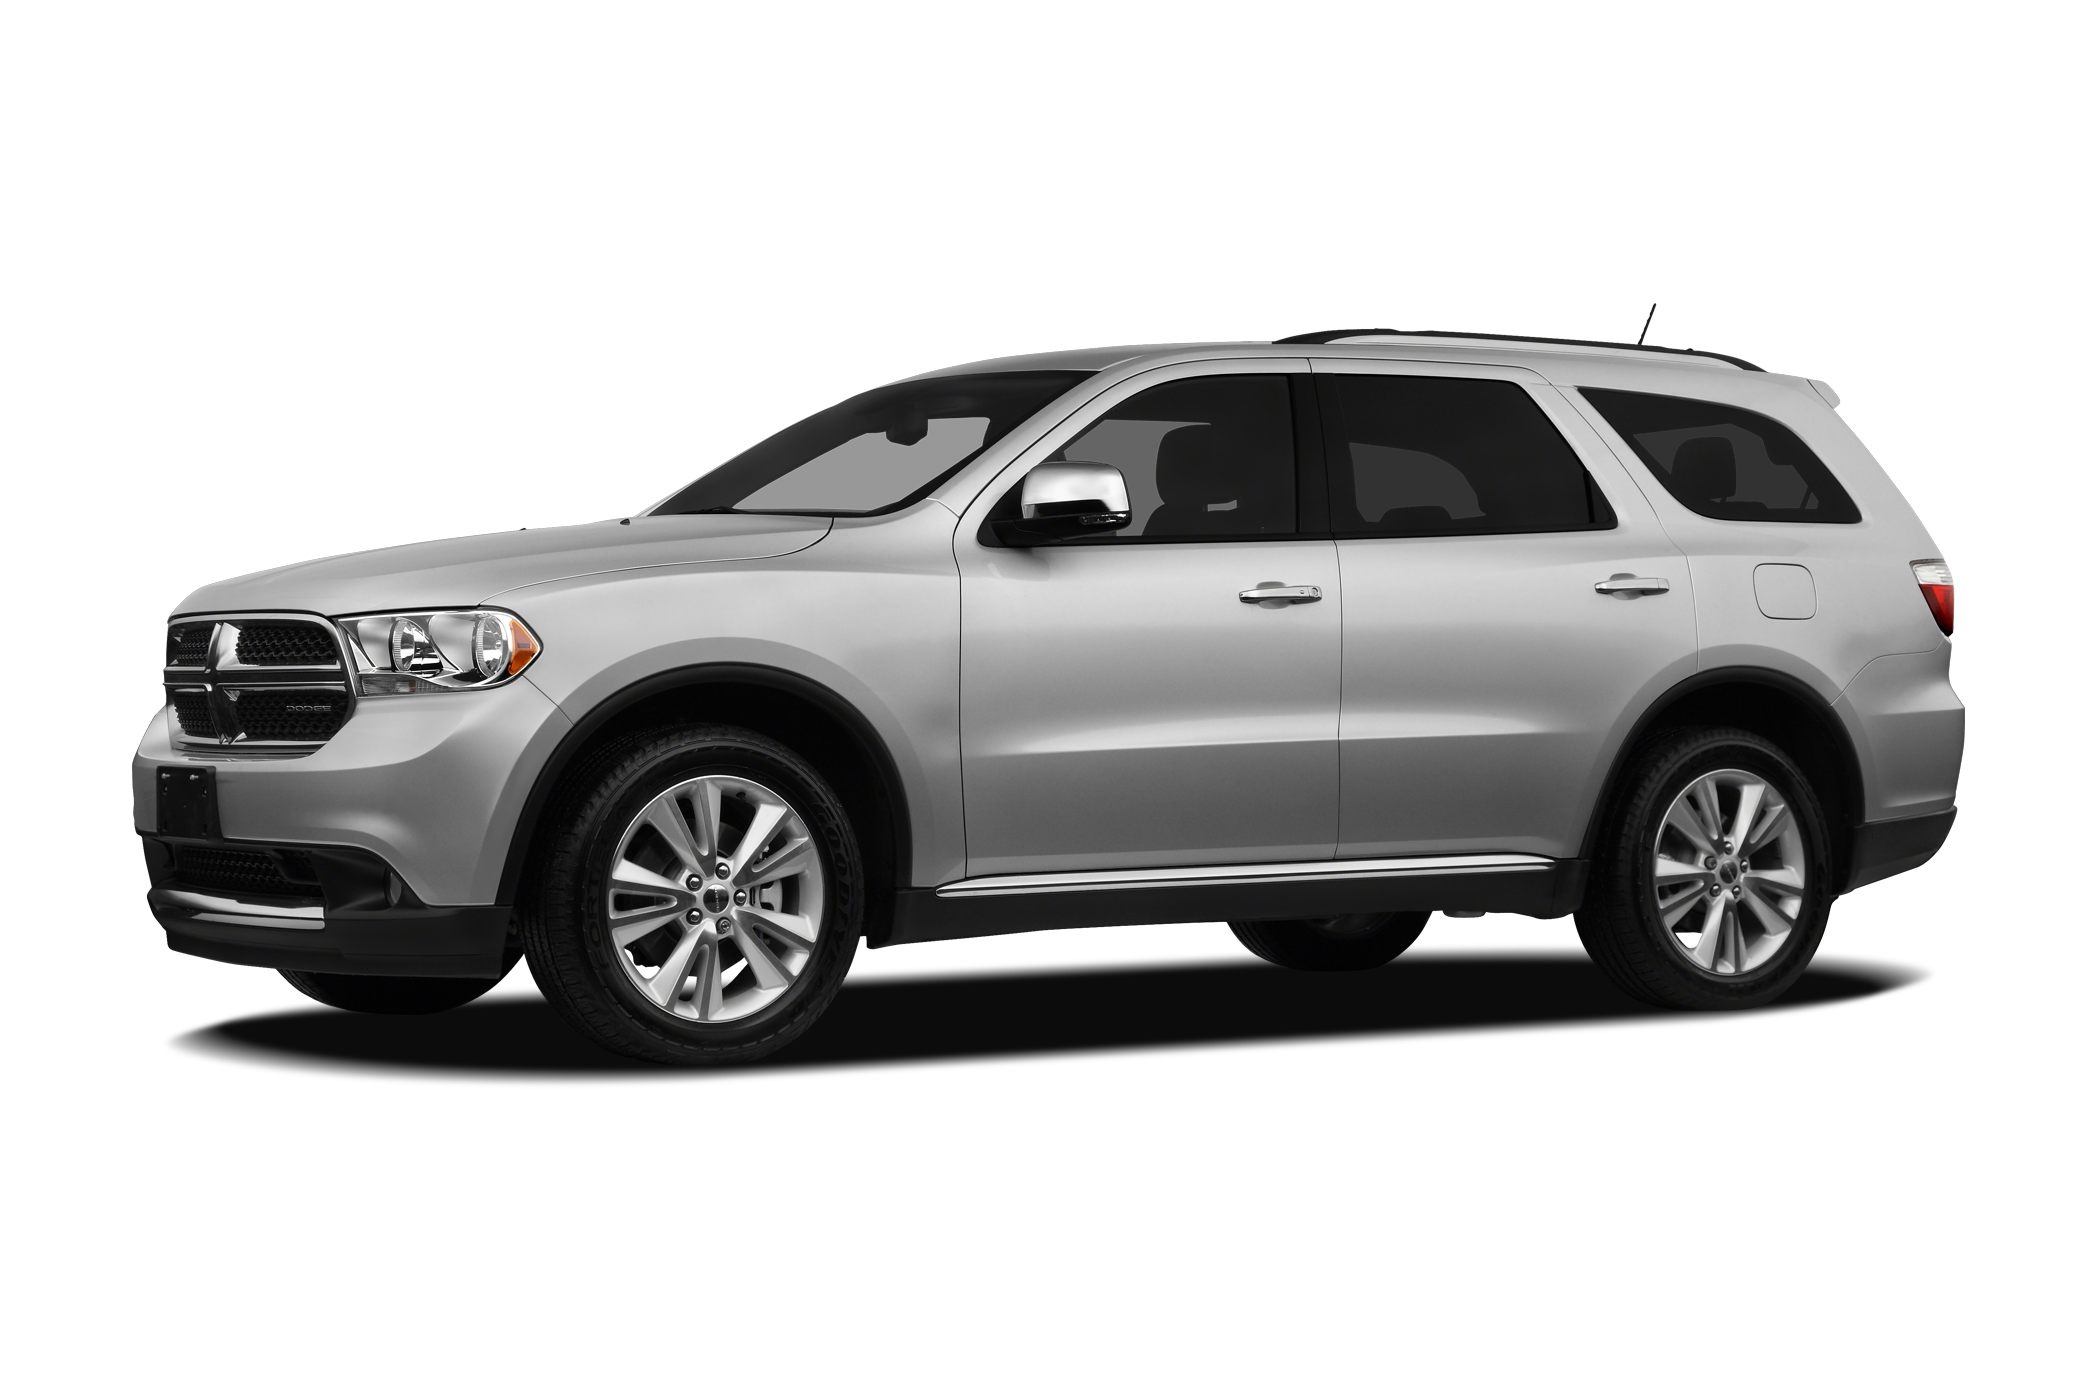 2011 Dodge Durango Express SUV for sale in Woodville for $23,873 with 10,981 miles